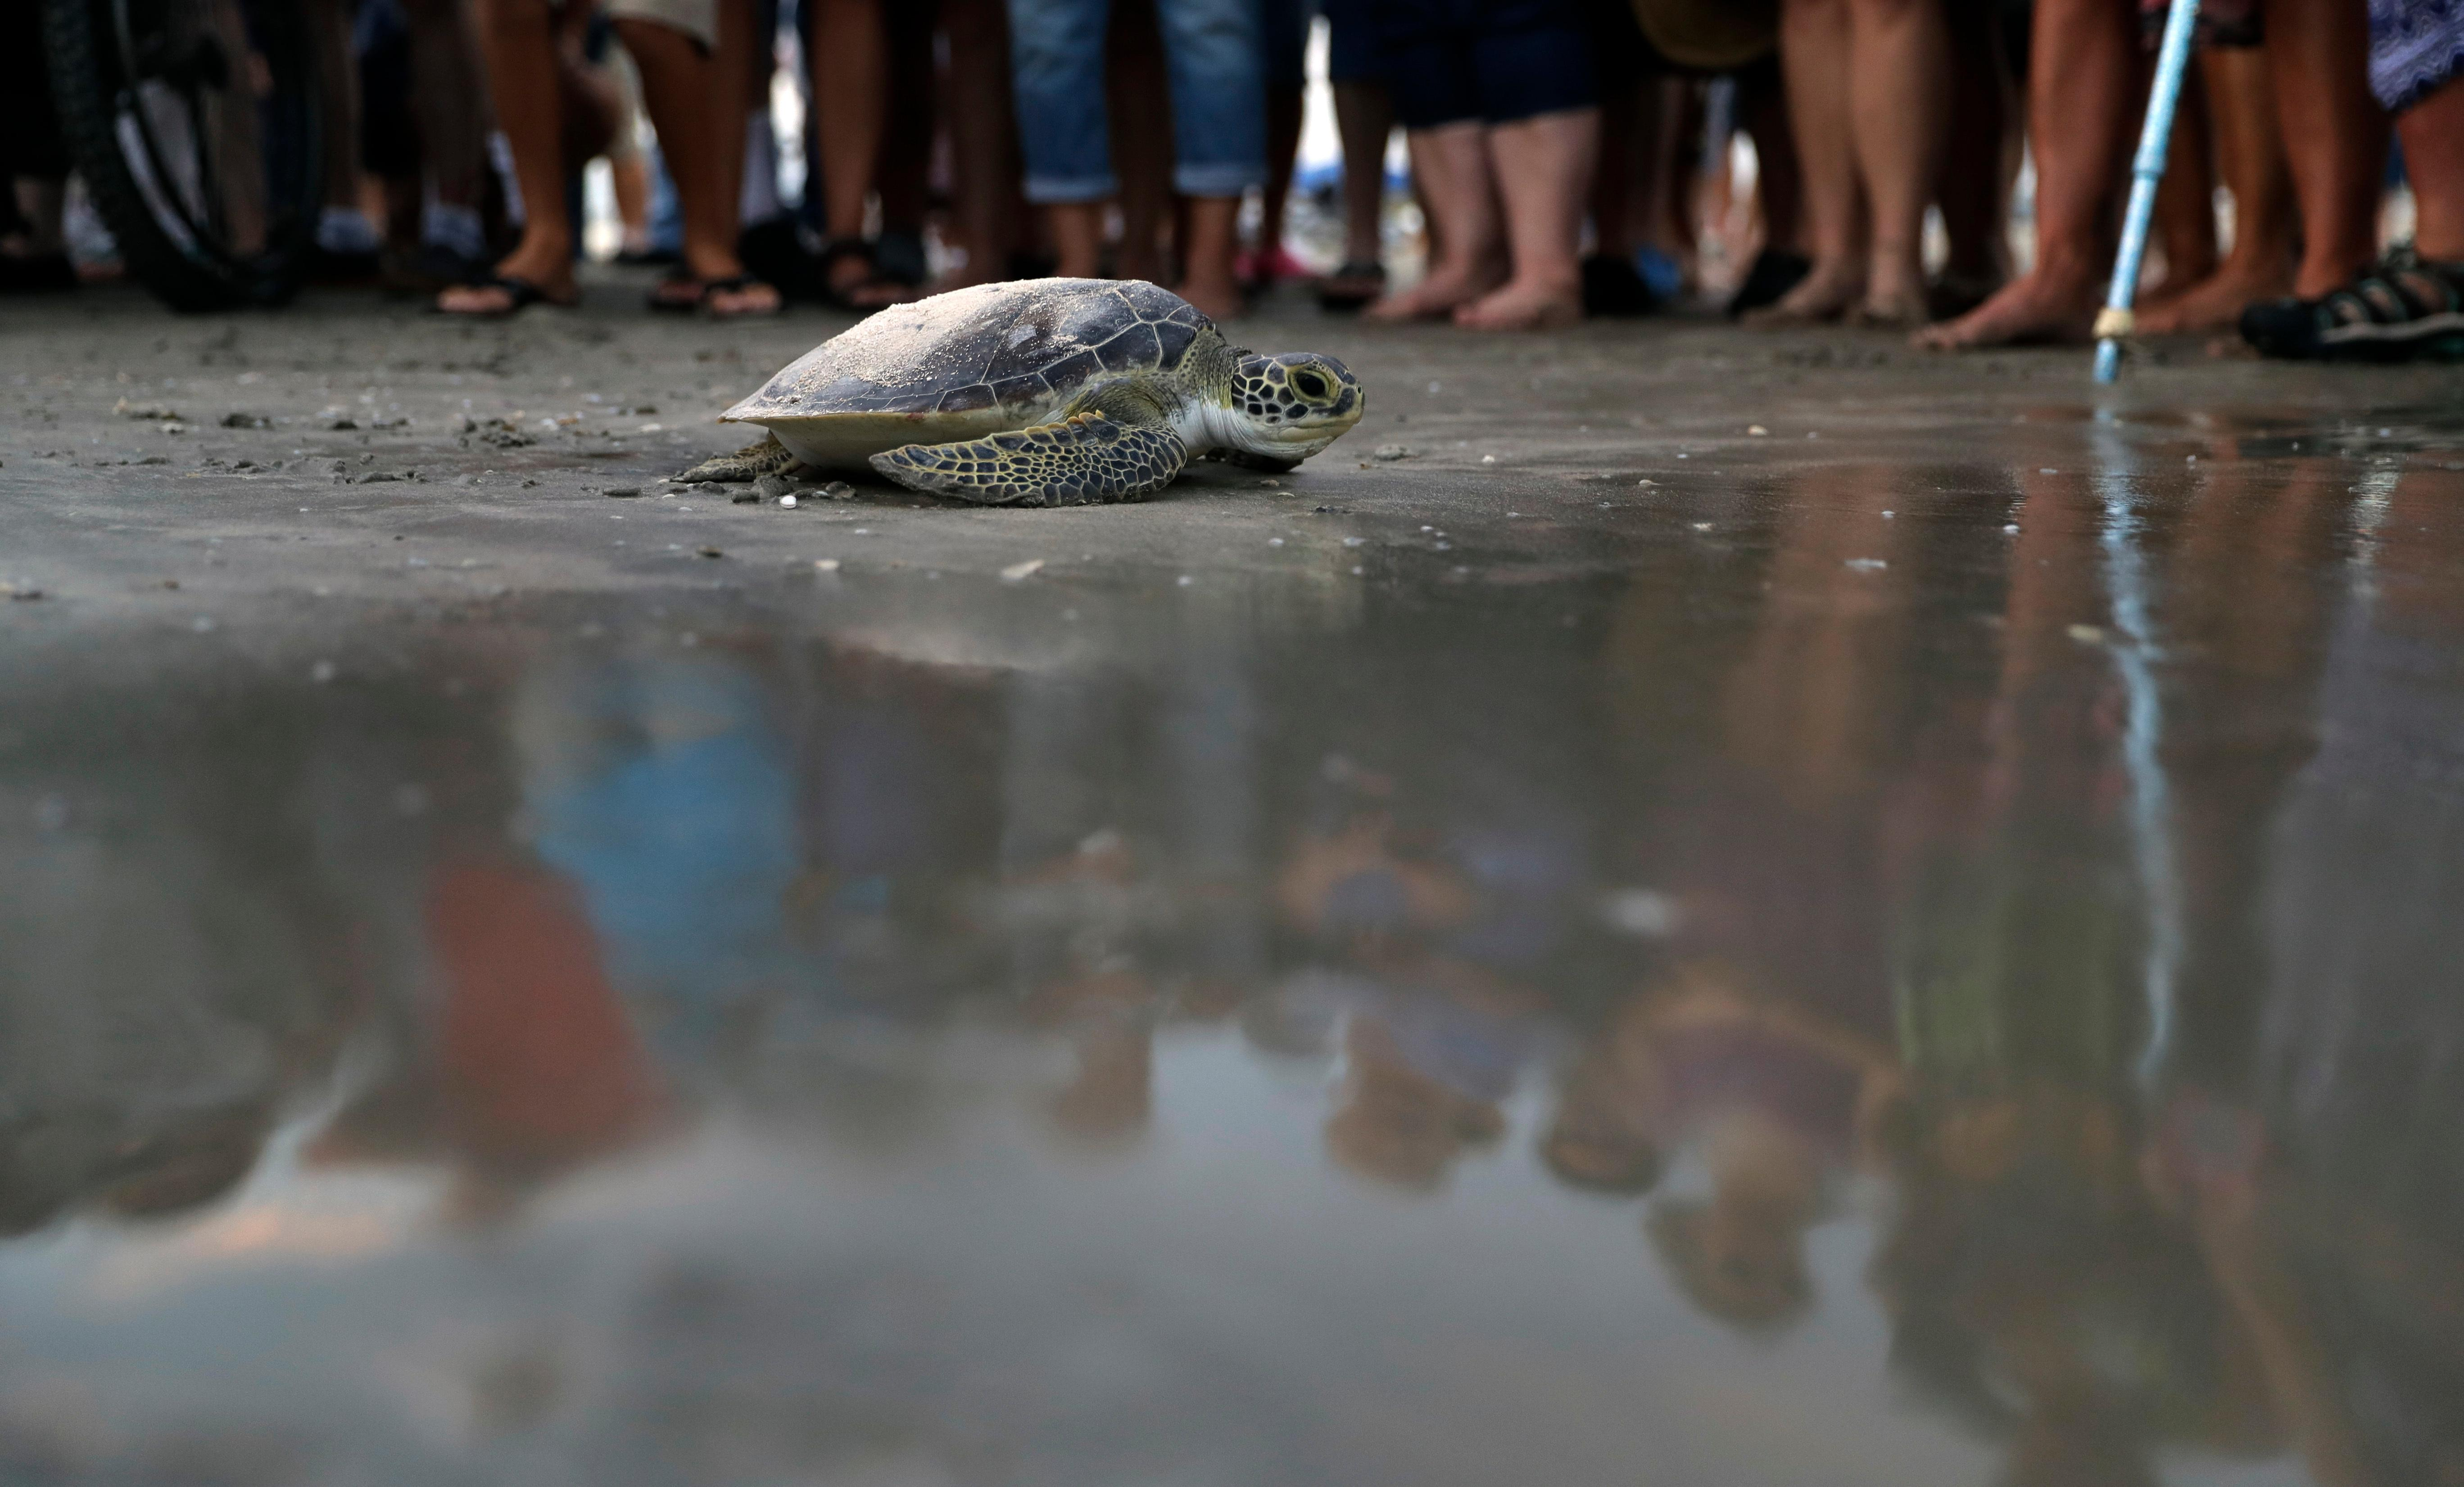 Mourners are reflected as a sea turtle named Picasso carries the ashes of Tony Amos, 80, a renowned oceanographer, on it's back as it is released back into the Gulf of Mexico following a memorial service, Saturday, Sept. 30, 2017, in Port Aransas, Texas. Amos died of complications from prostate cancer on Sept. 4, mere days after Harvey roared ashore as a fearsome hurricane.  (AP Photo/Eric Gay)